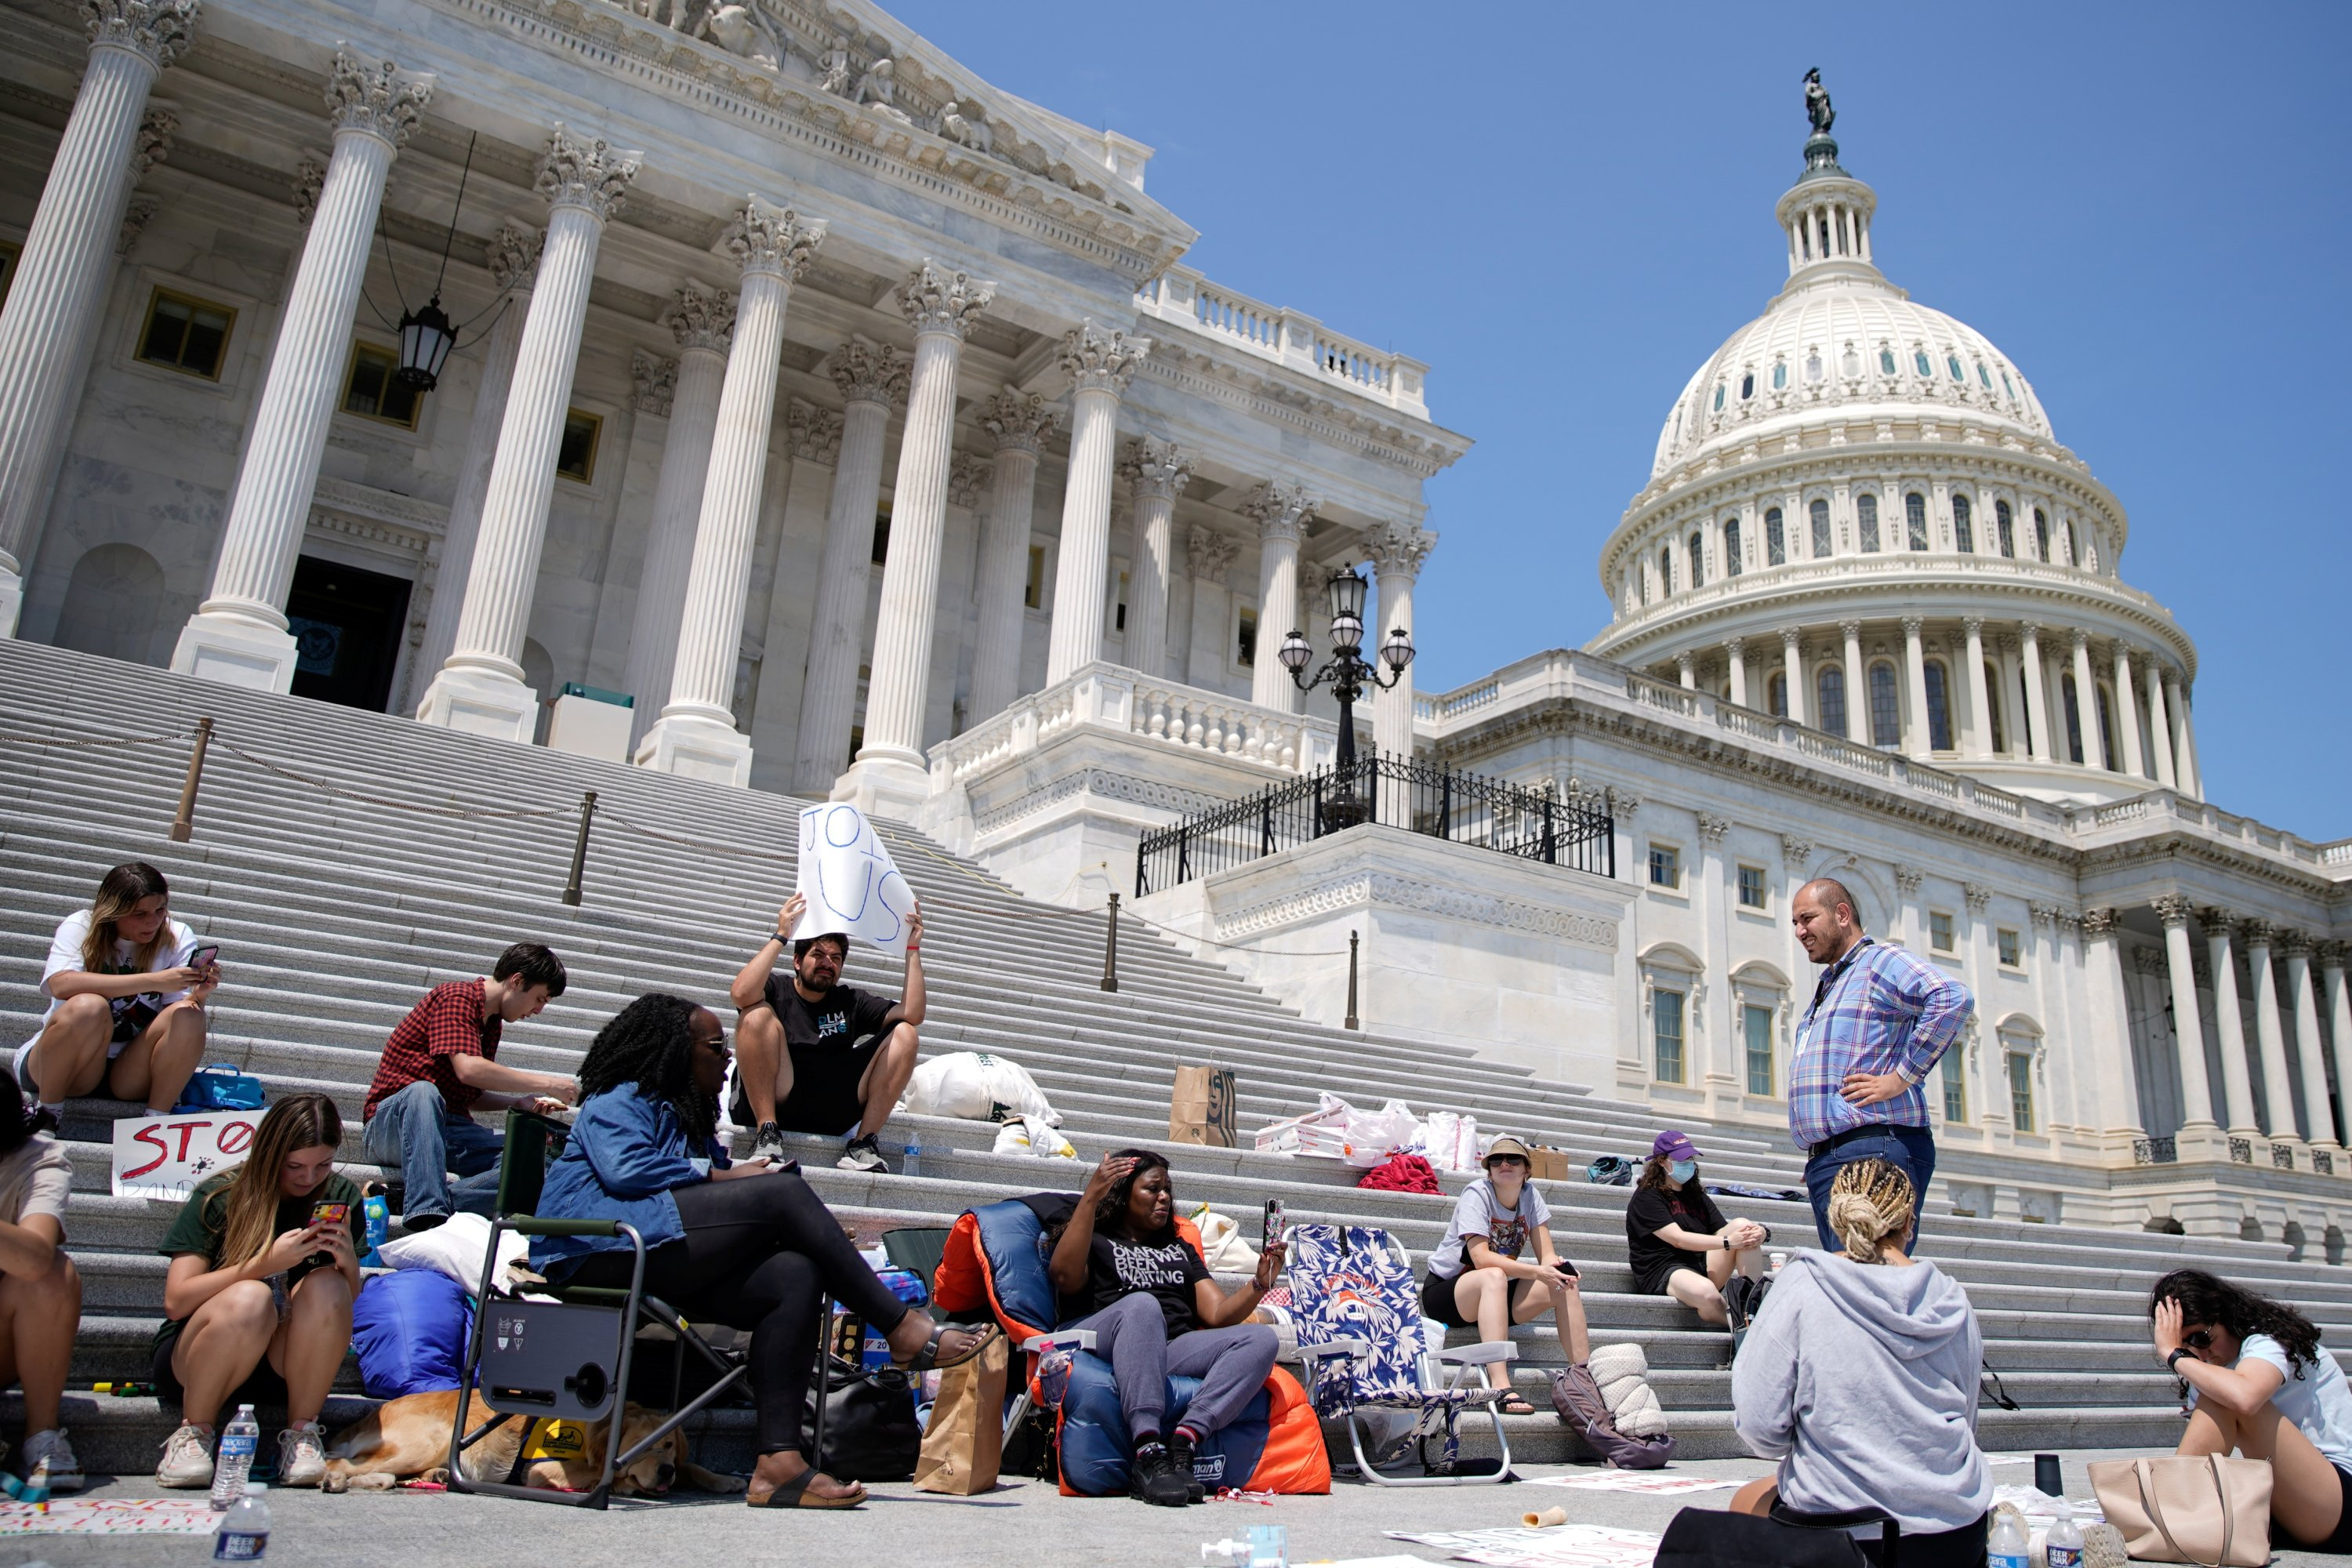 People camp out on the steps of the U.S. Capitol to highlight the upcoming expiration of the pandemic-related federal moratorium on residential evictions, in Washington, U.S., July 31, 2021. (Reuters Photo)